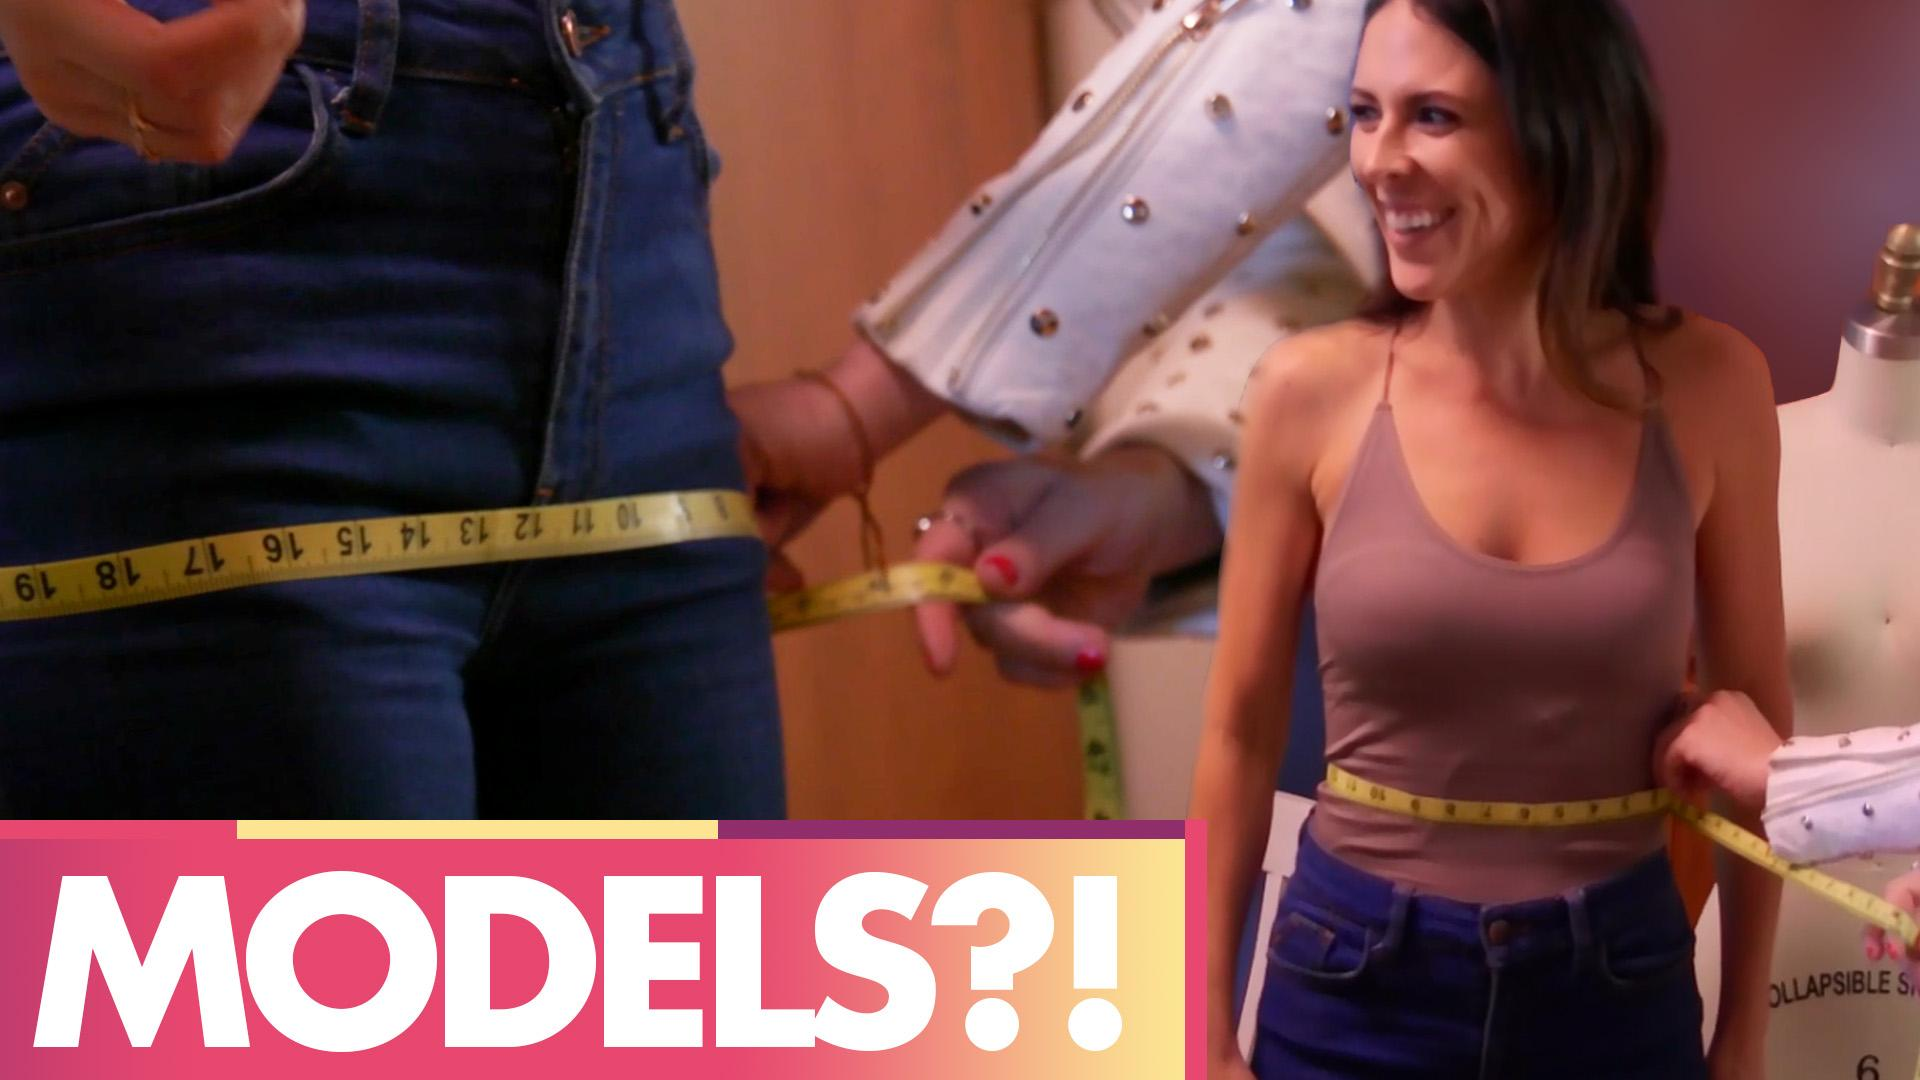 BECOMING FASHION MODELS?!